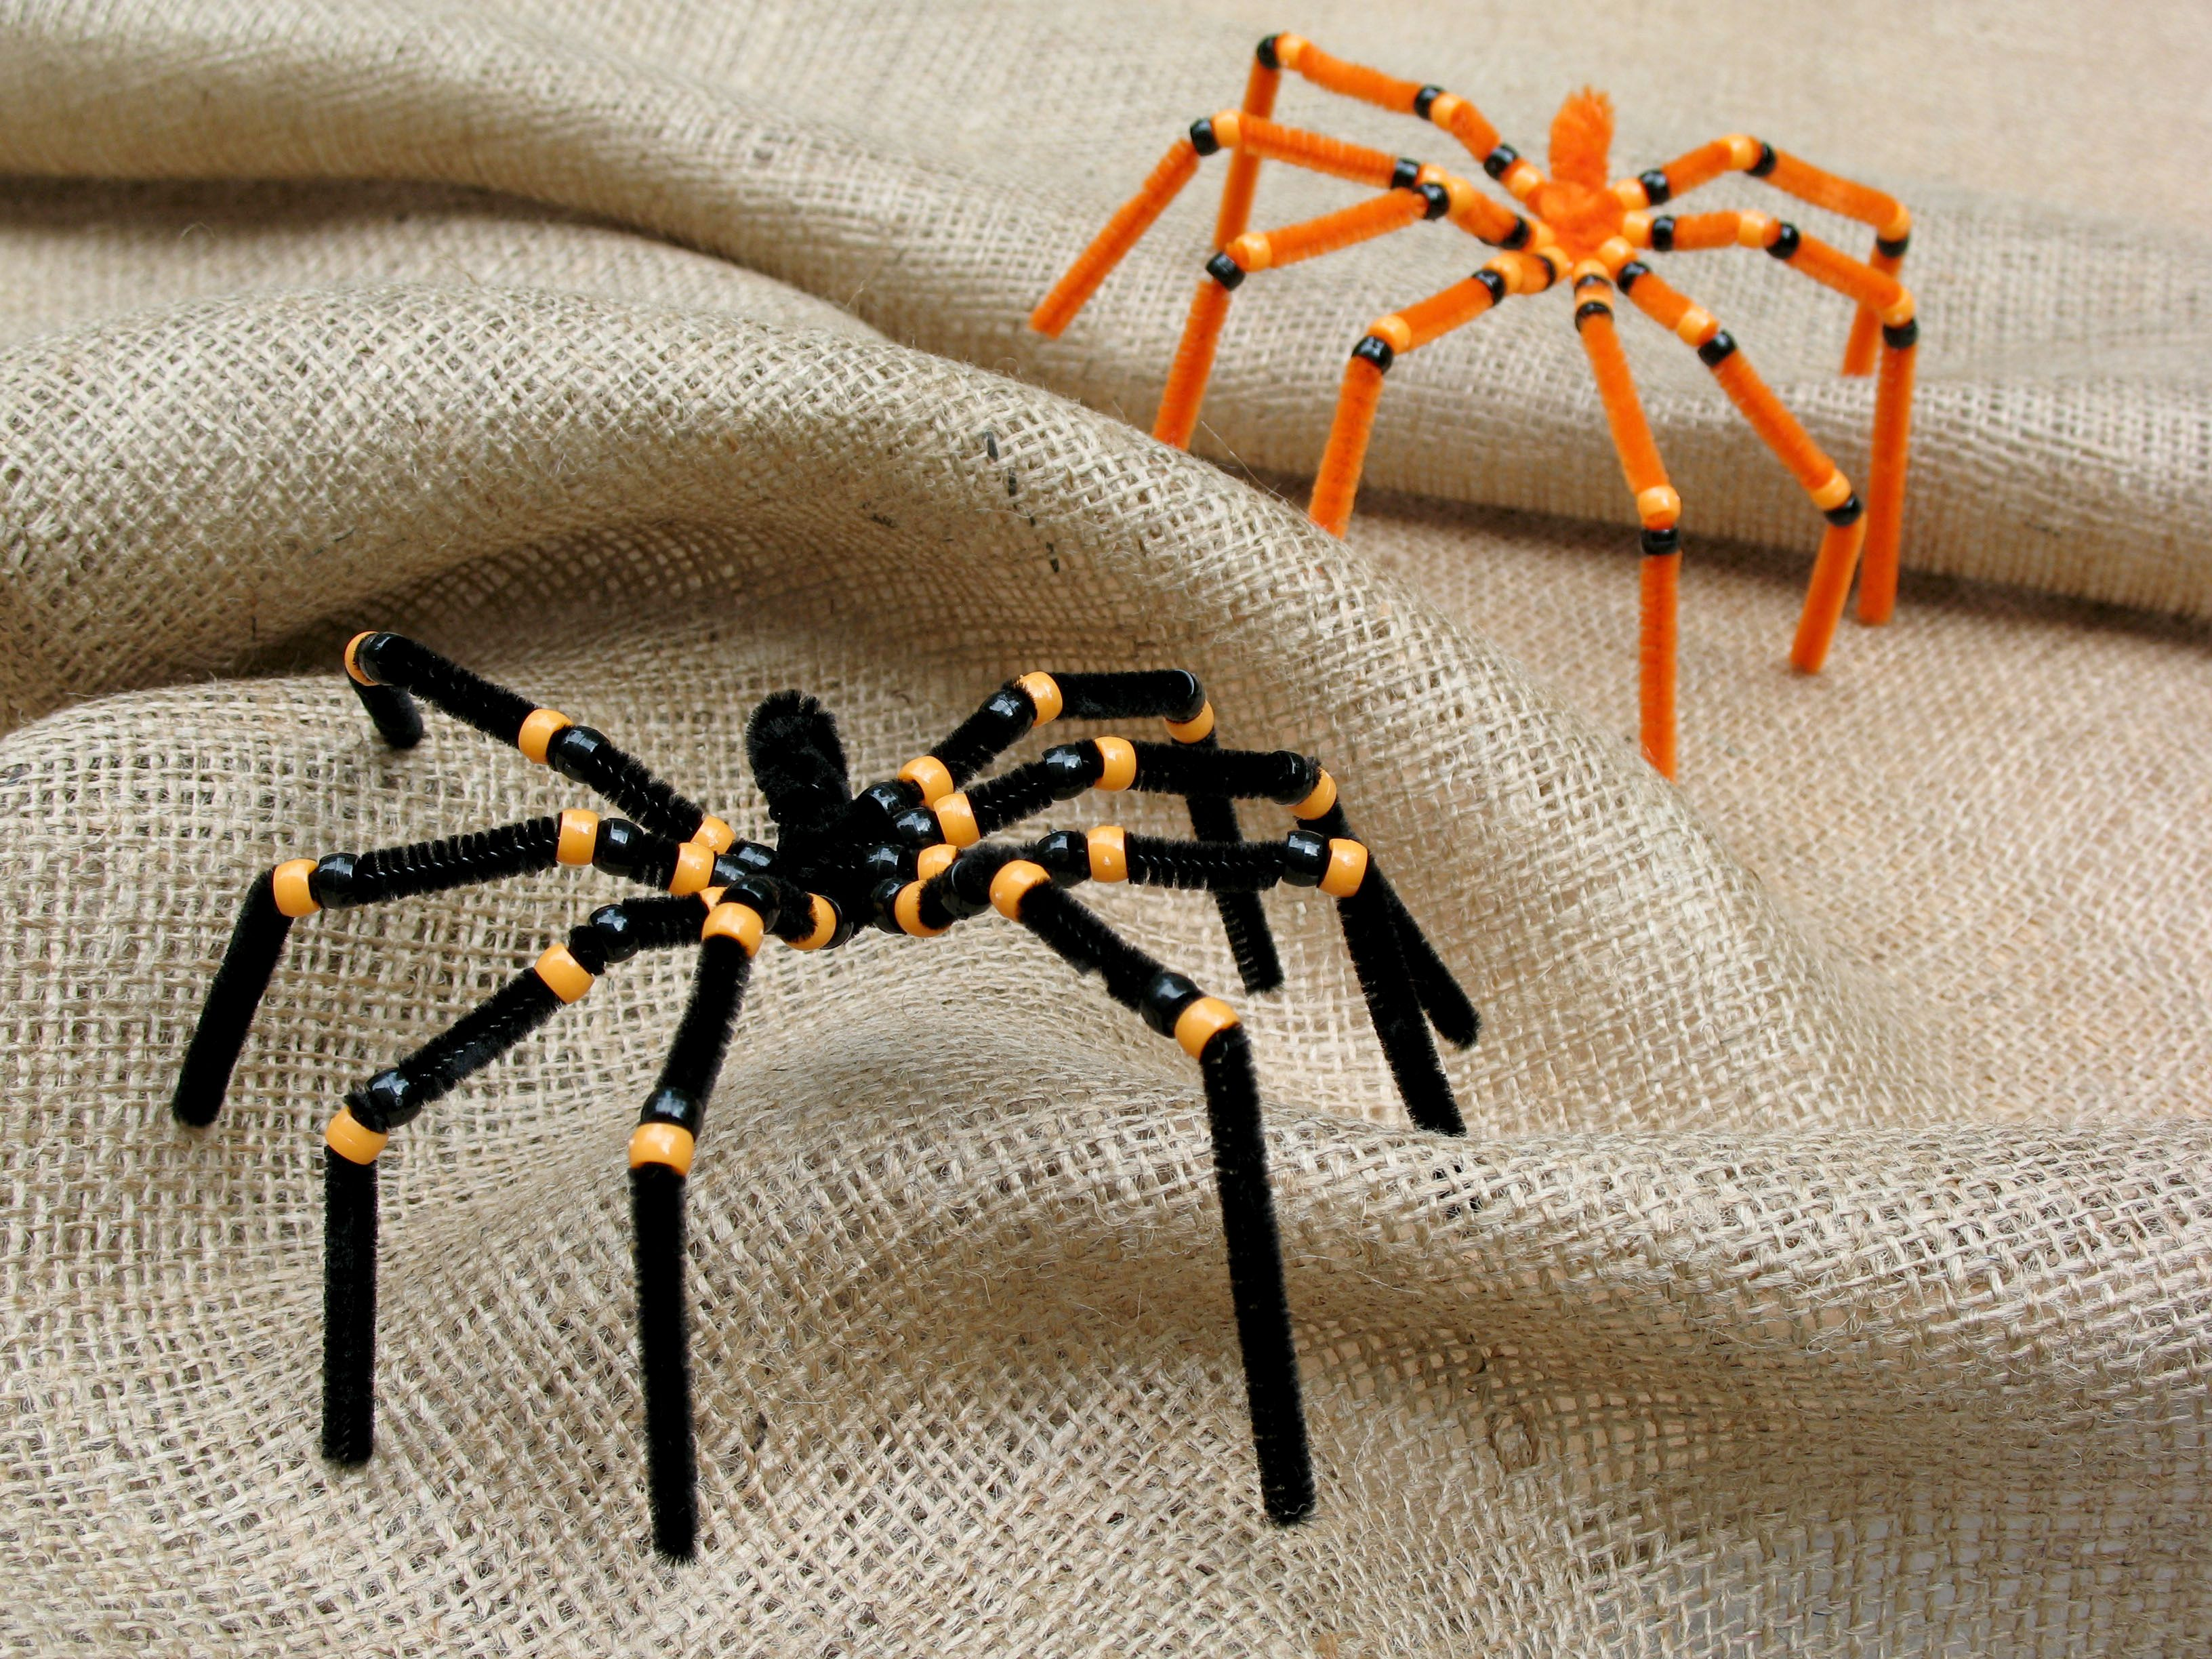 pipe cleaner and bead spider craft easy project for kindergarten bug science make with elmers glitter glue web on waxed paper - Halloween Crafts For Preschoolers Easy